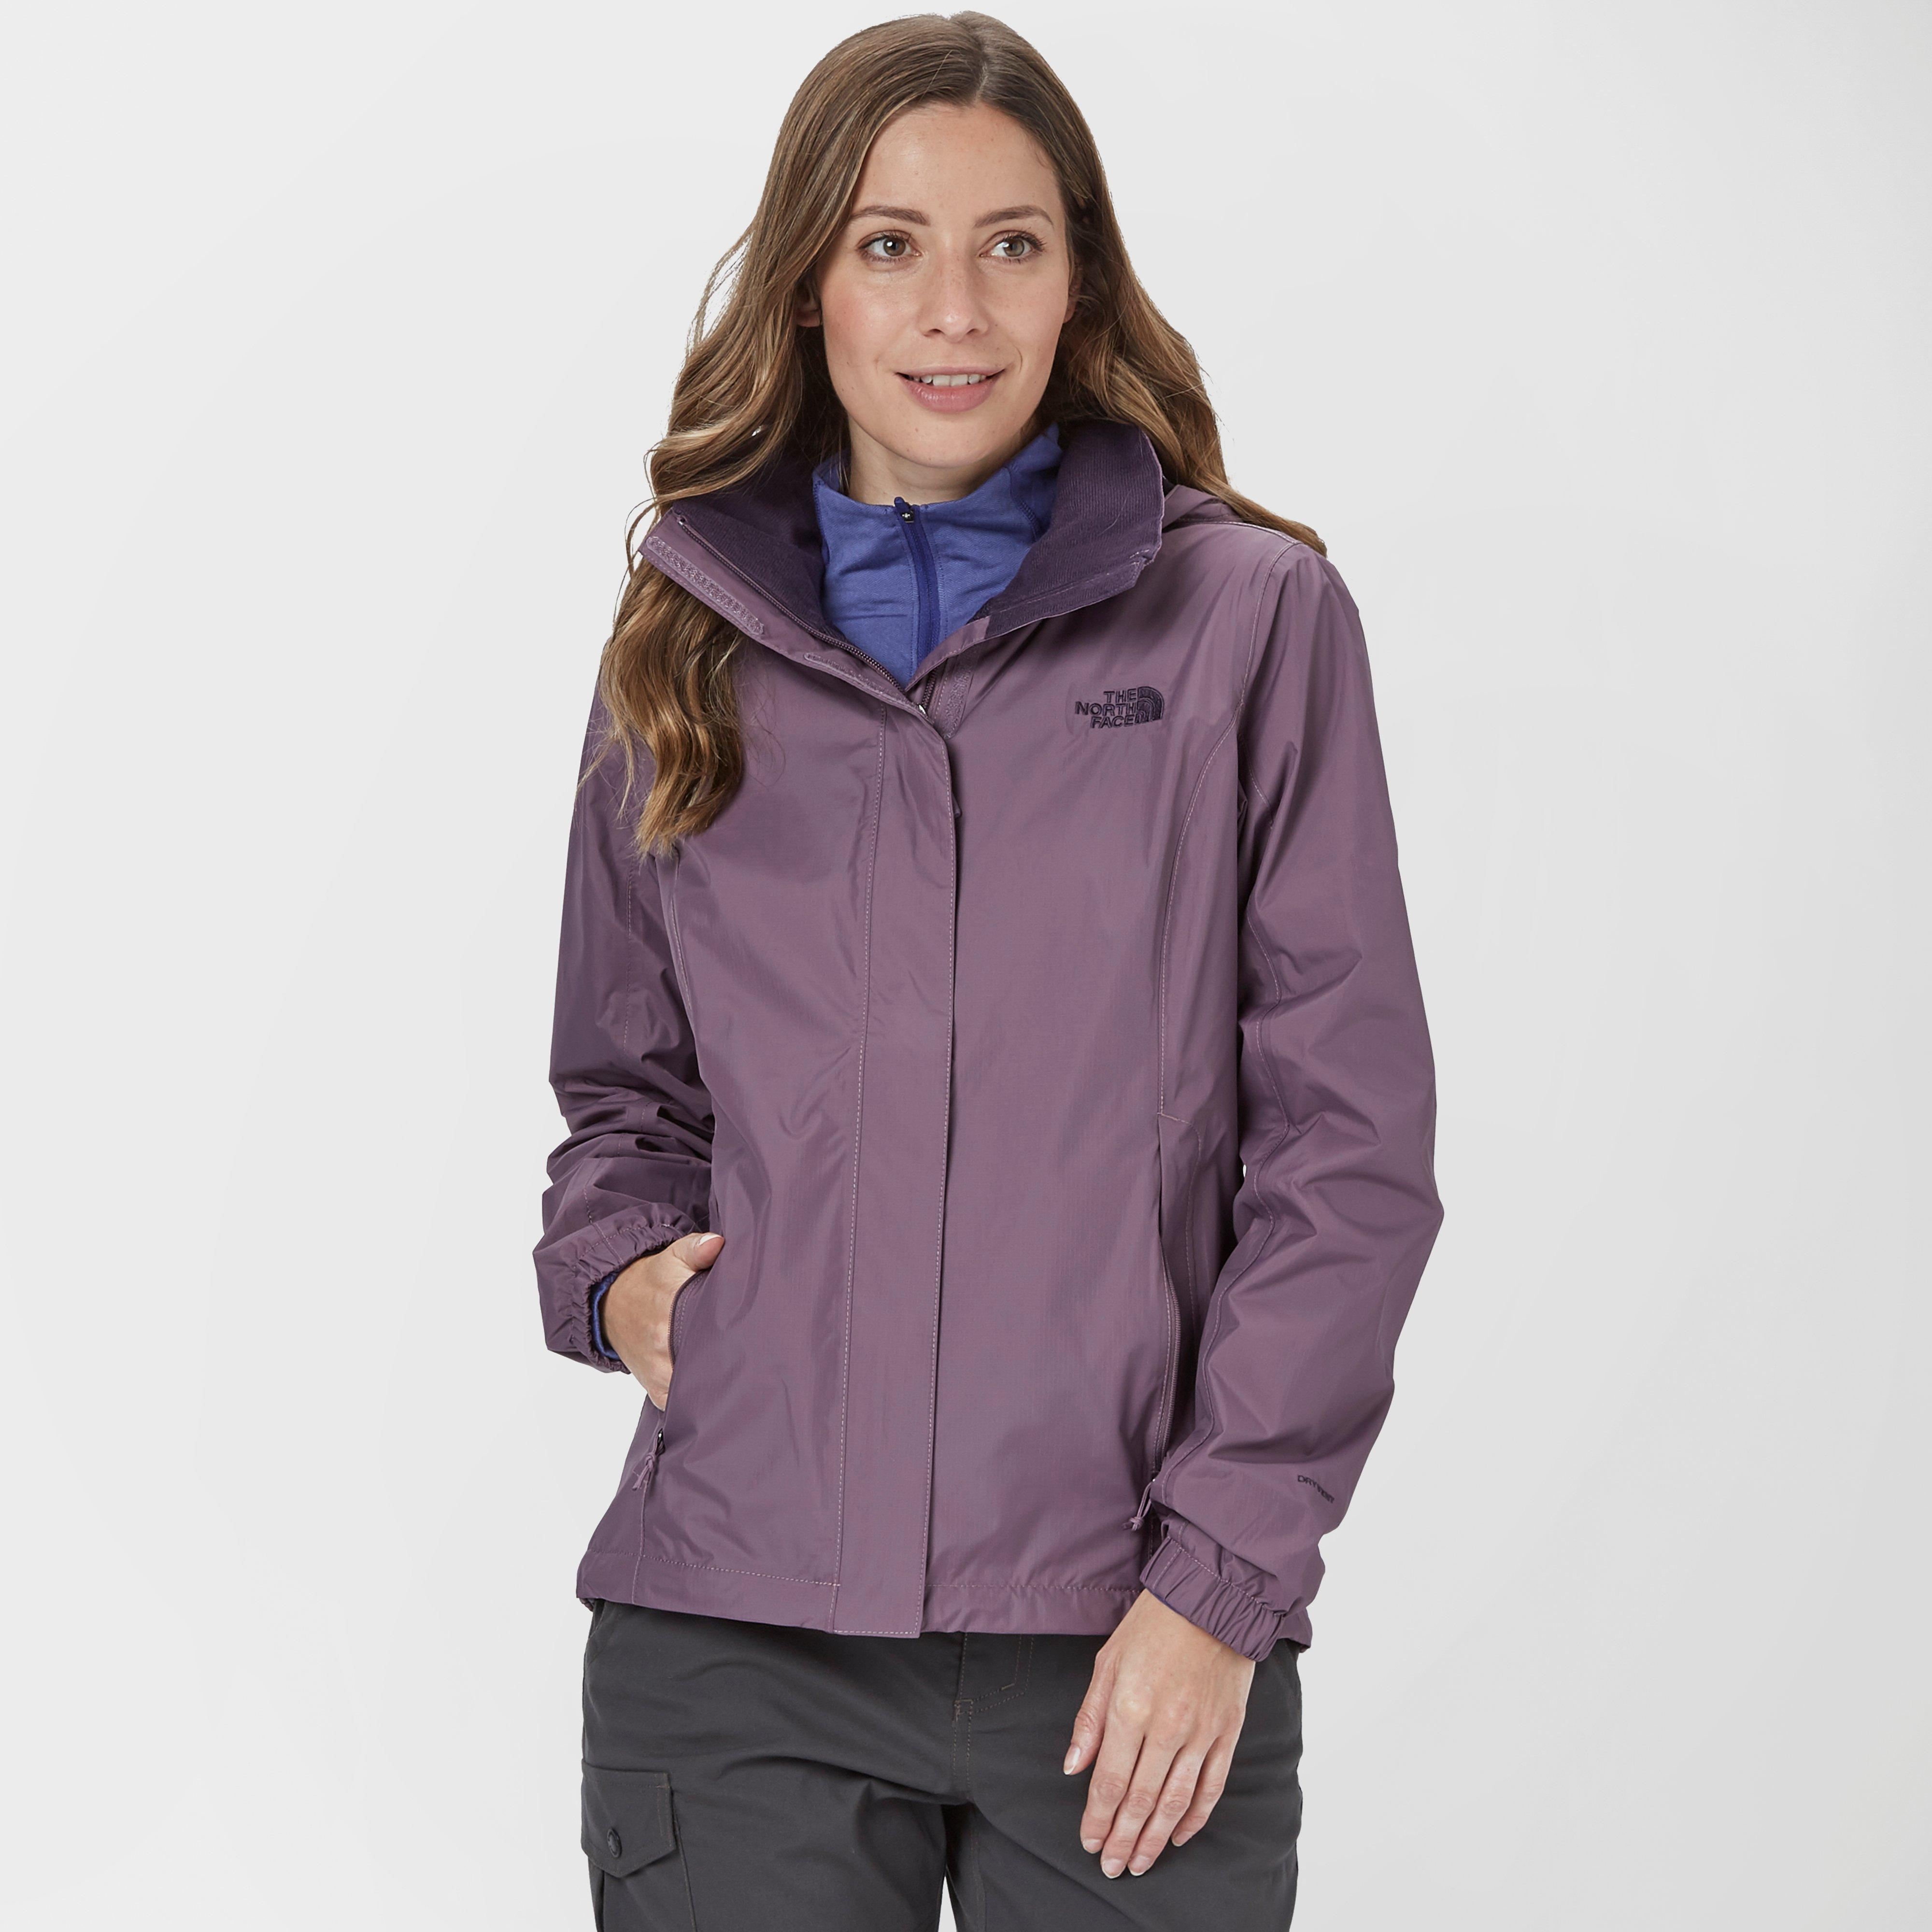 ce688f74bd6f Purple THE NORTH FACE Women s DryVent™ Resolve 2 Jacket image 1